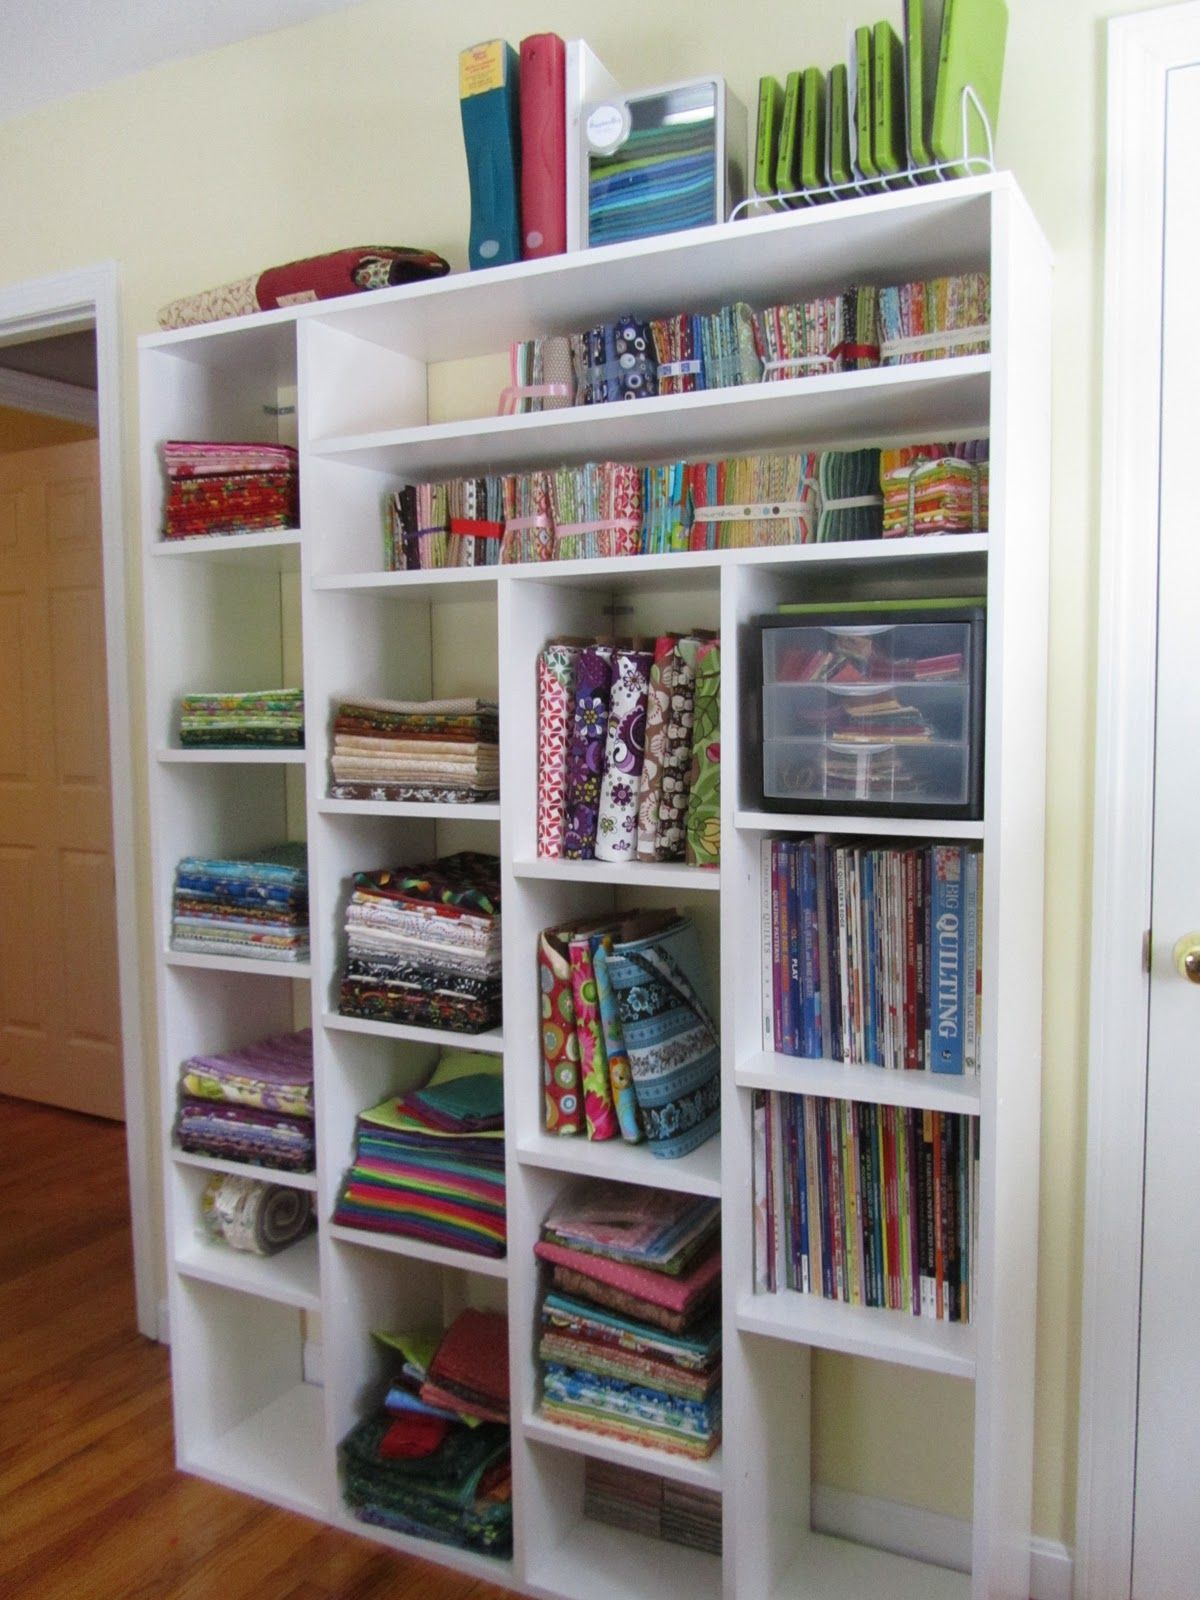 Great fabric storage - Quilting Jewel My Quilting Room & Quilting Room | Pinterest | Quilting room Fabric storage and ...